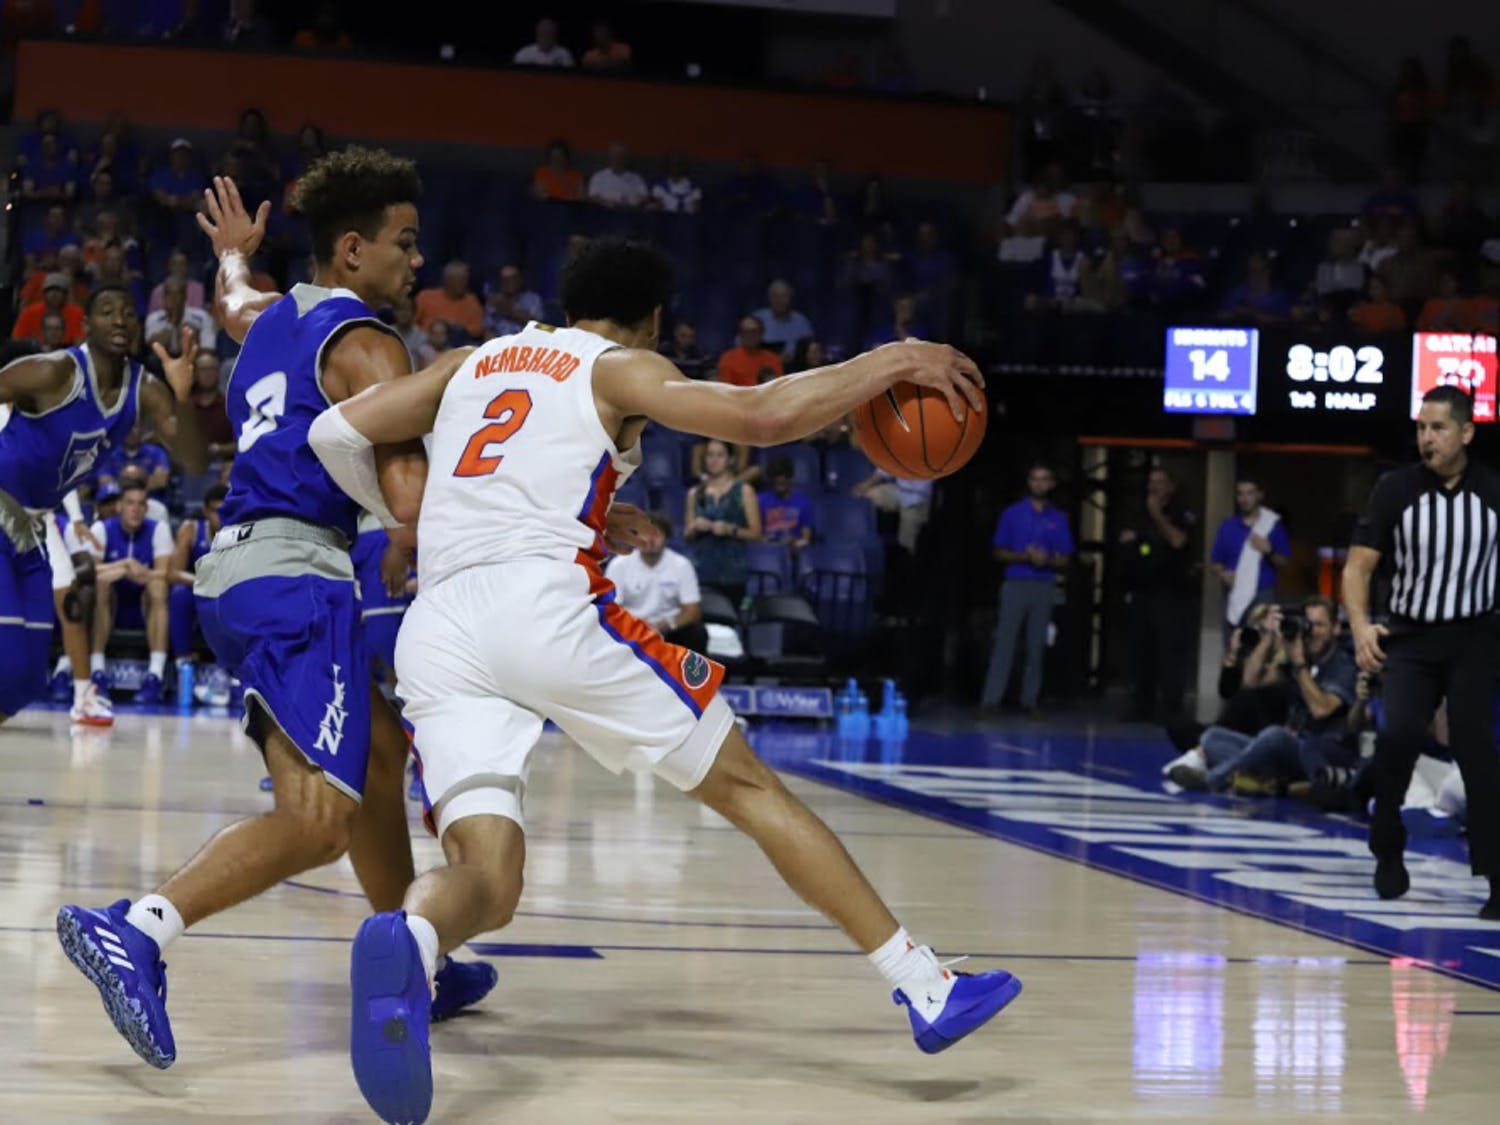 Point guard Andrew Nembhard led the Gators with 17 points and notched six assists in the exhibition win.